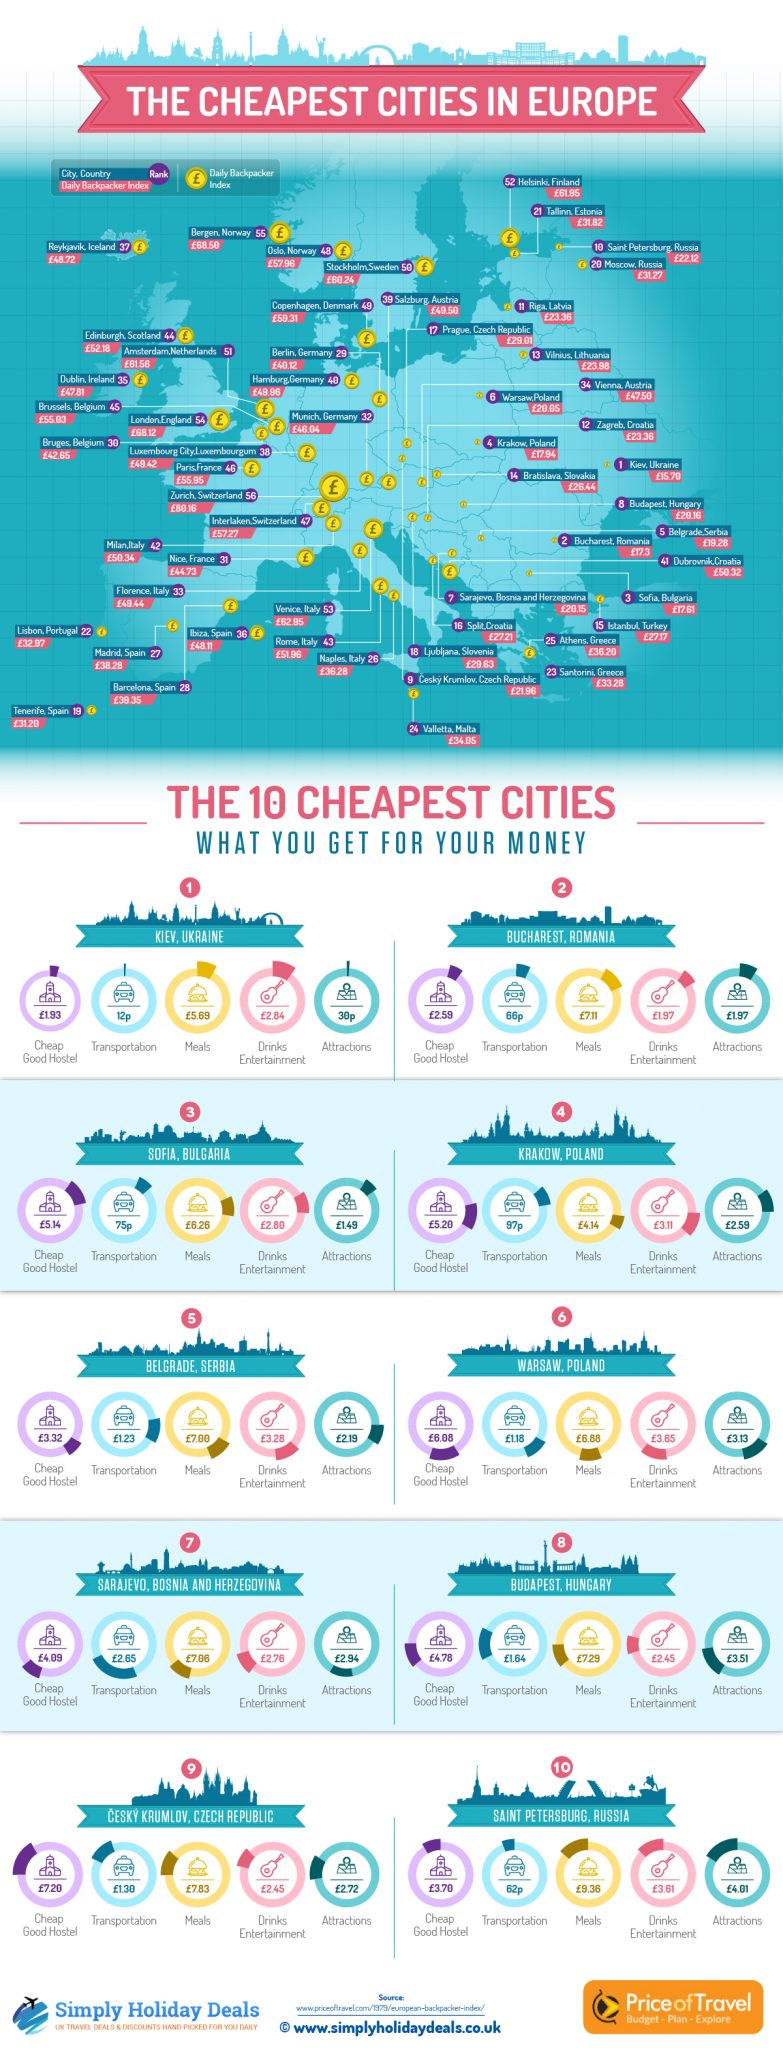 The top 10 cheapest cities